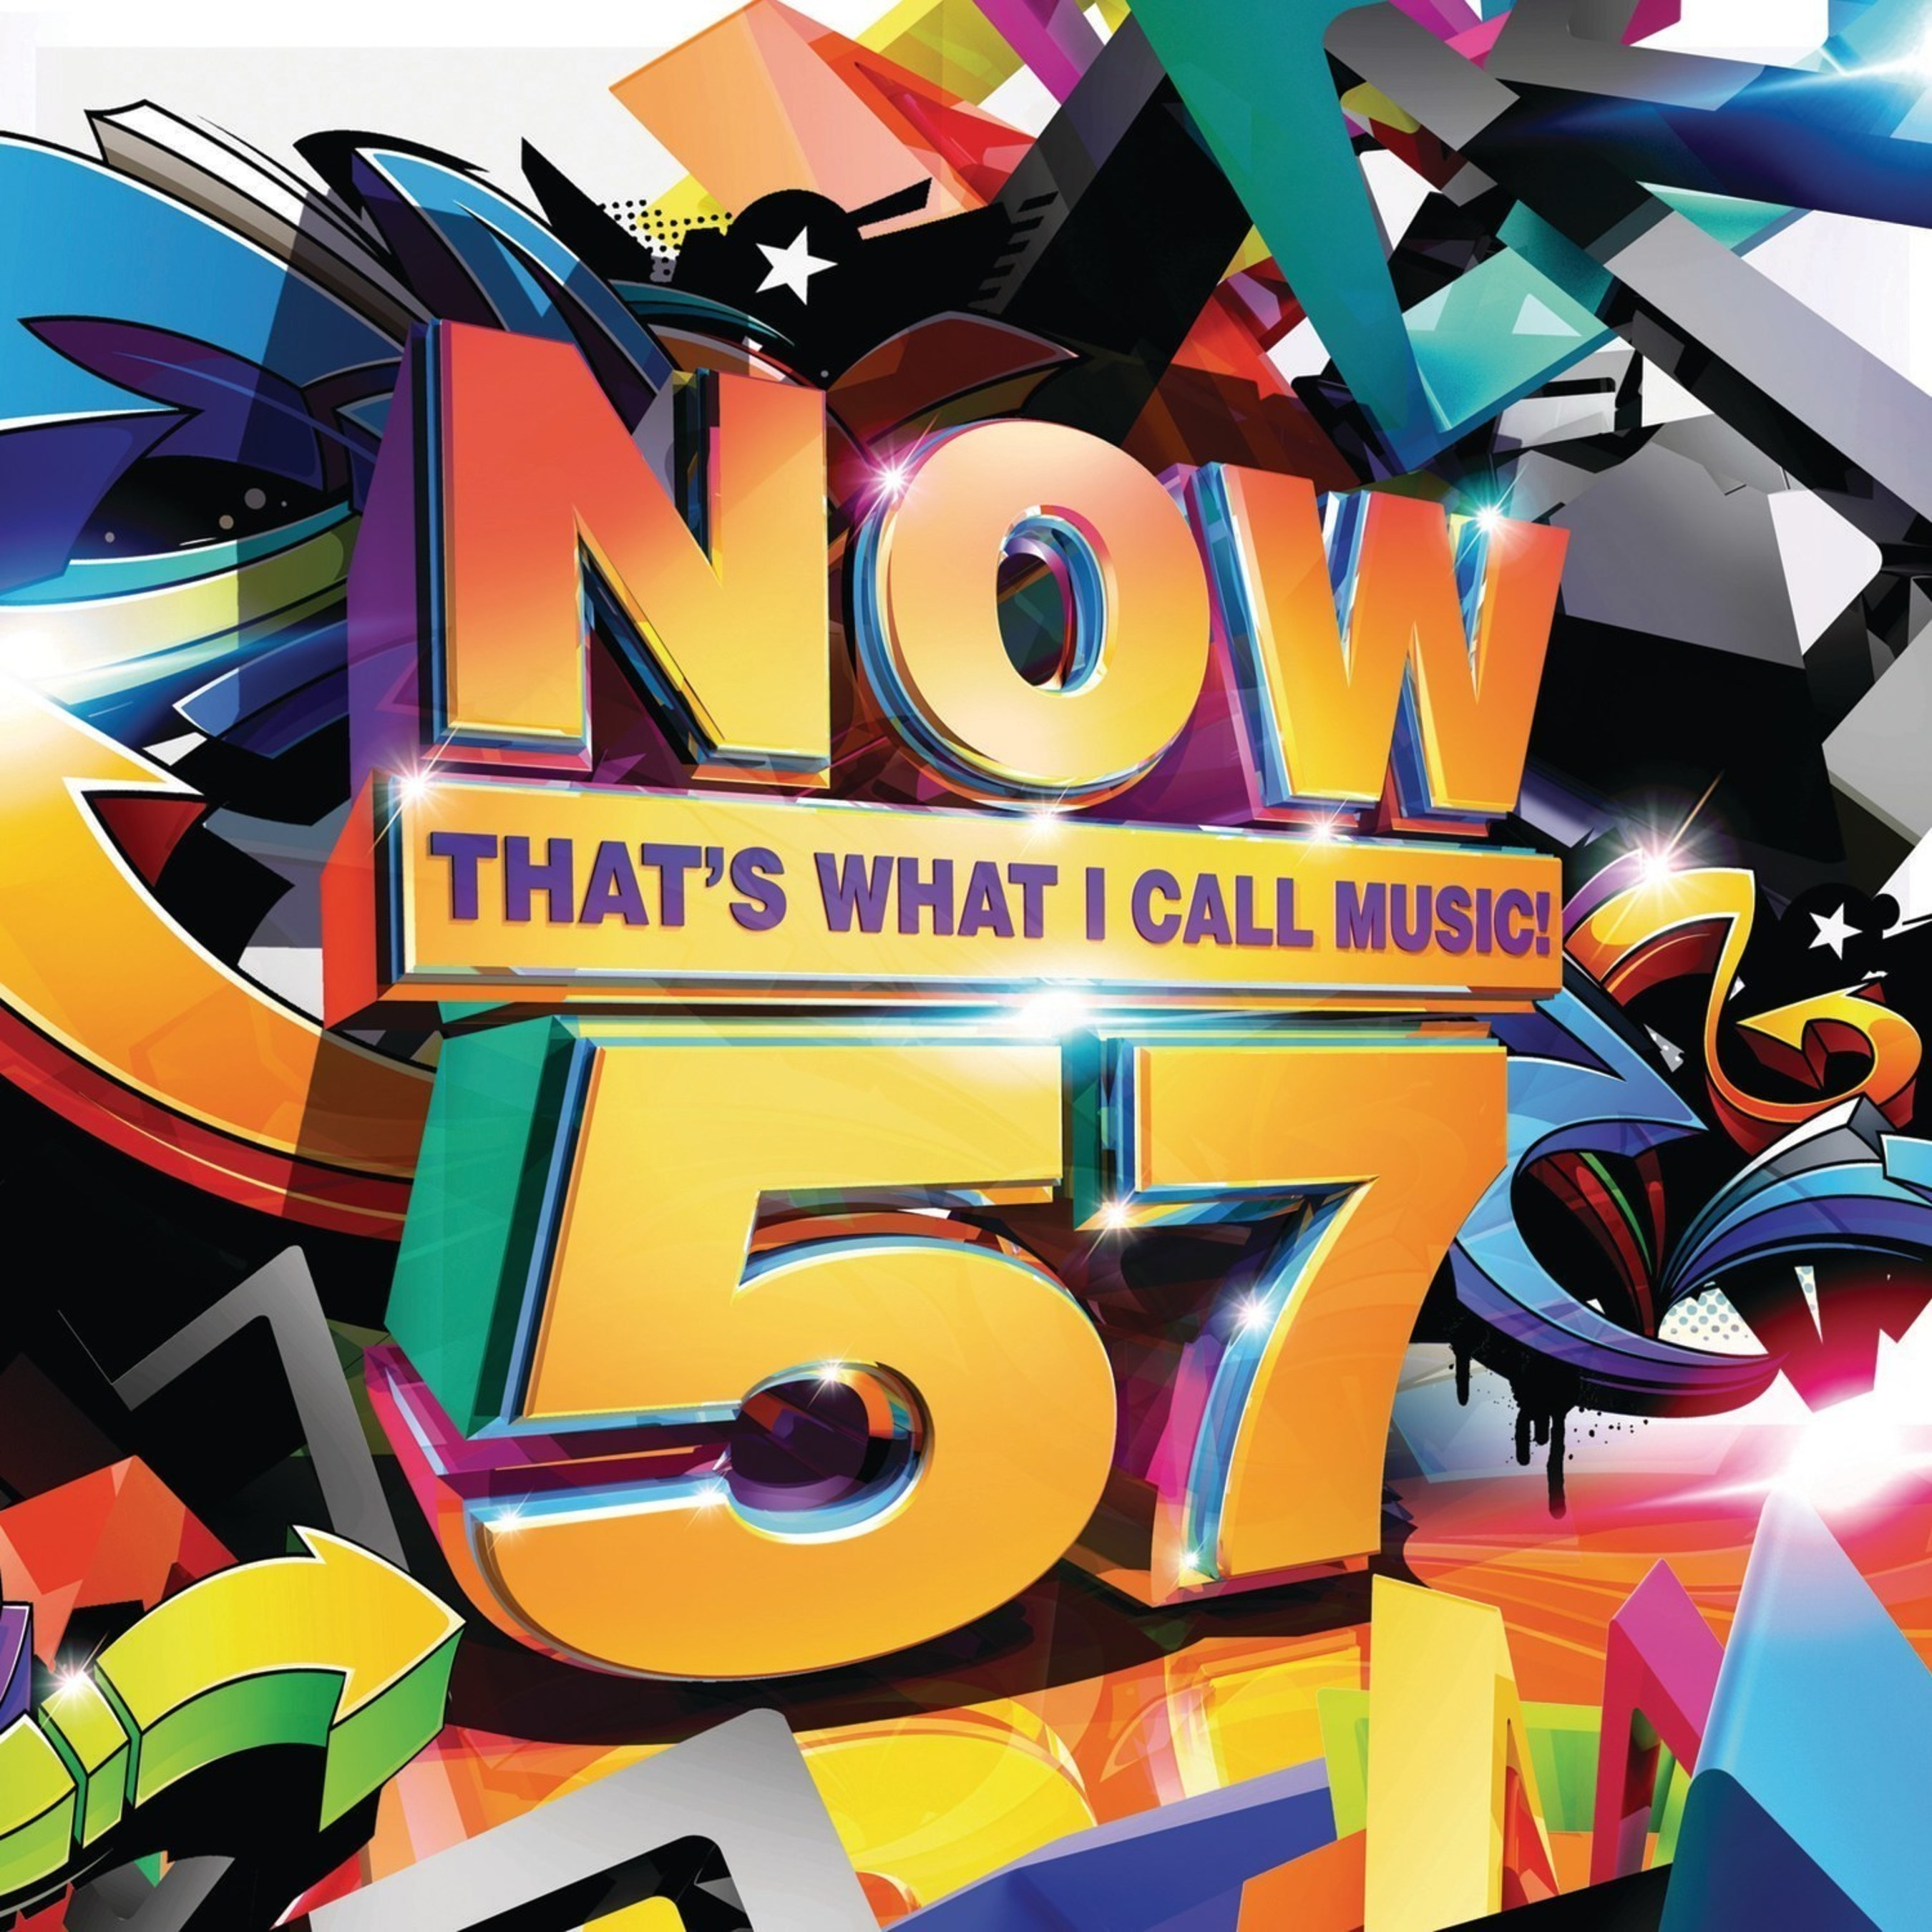 NOW That's What I Call Music! Presents Today's Biggest Hits on NOW That's What I Call Music! 57 and Classic Pop/Rock Tracks on NOW That's What I Call Power Ballads Hi